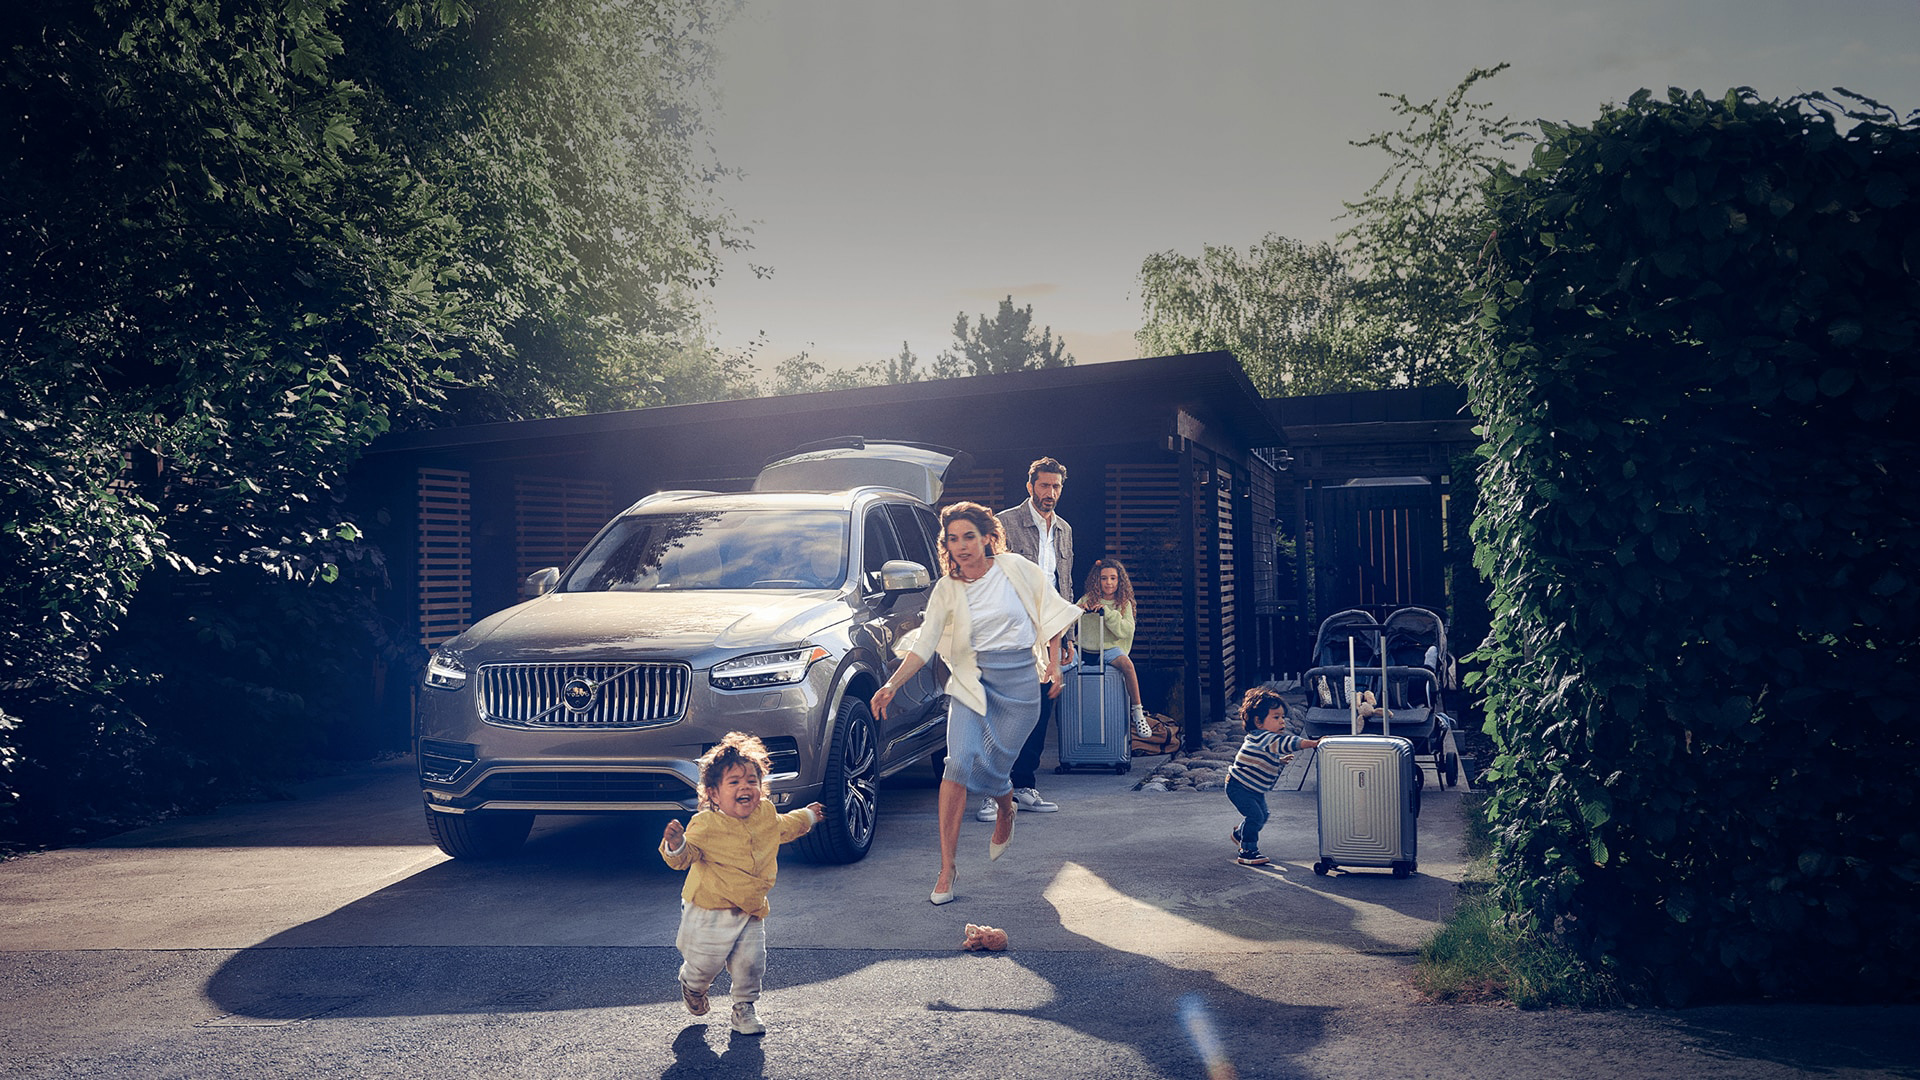 A grey Volvo XC90 SUV and a family with young children trying to pack up and leave home